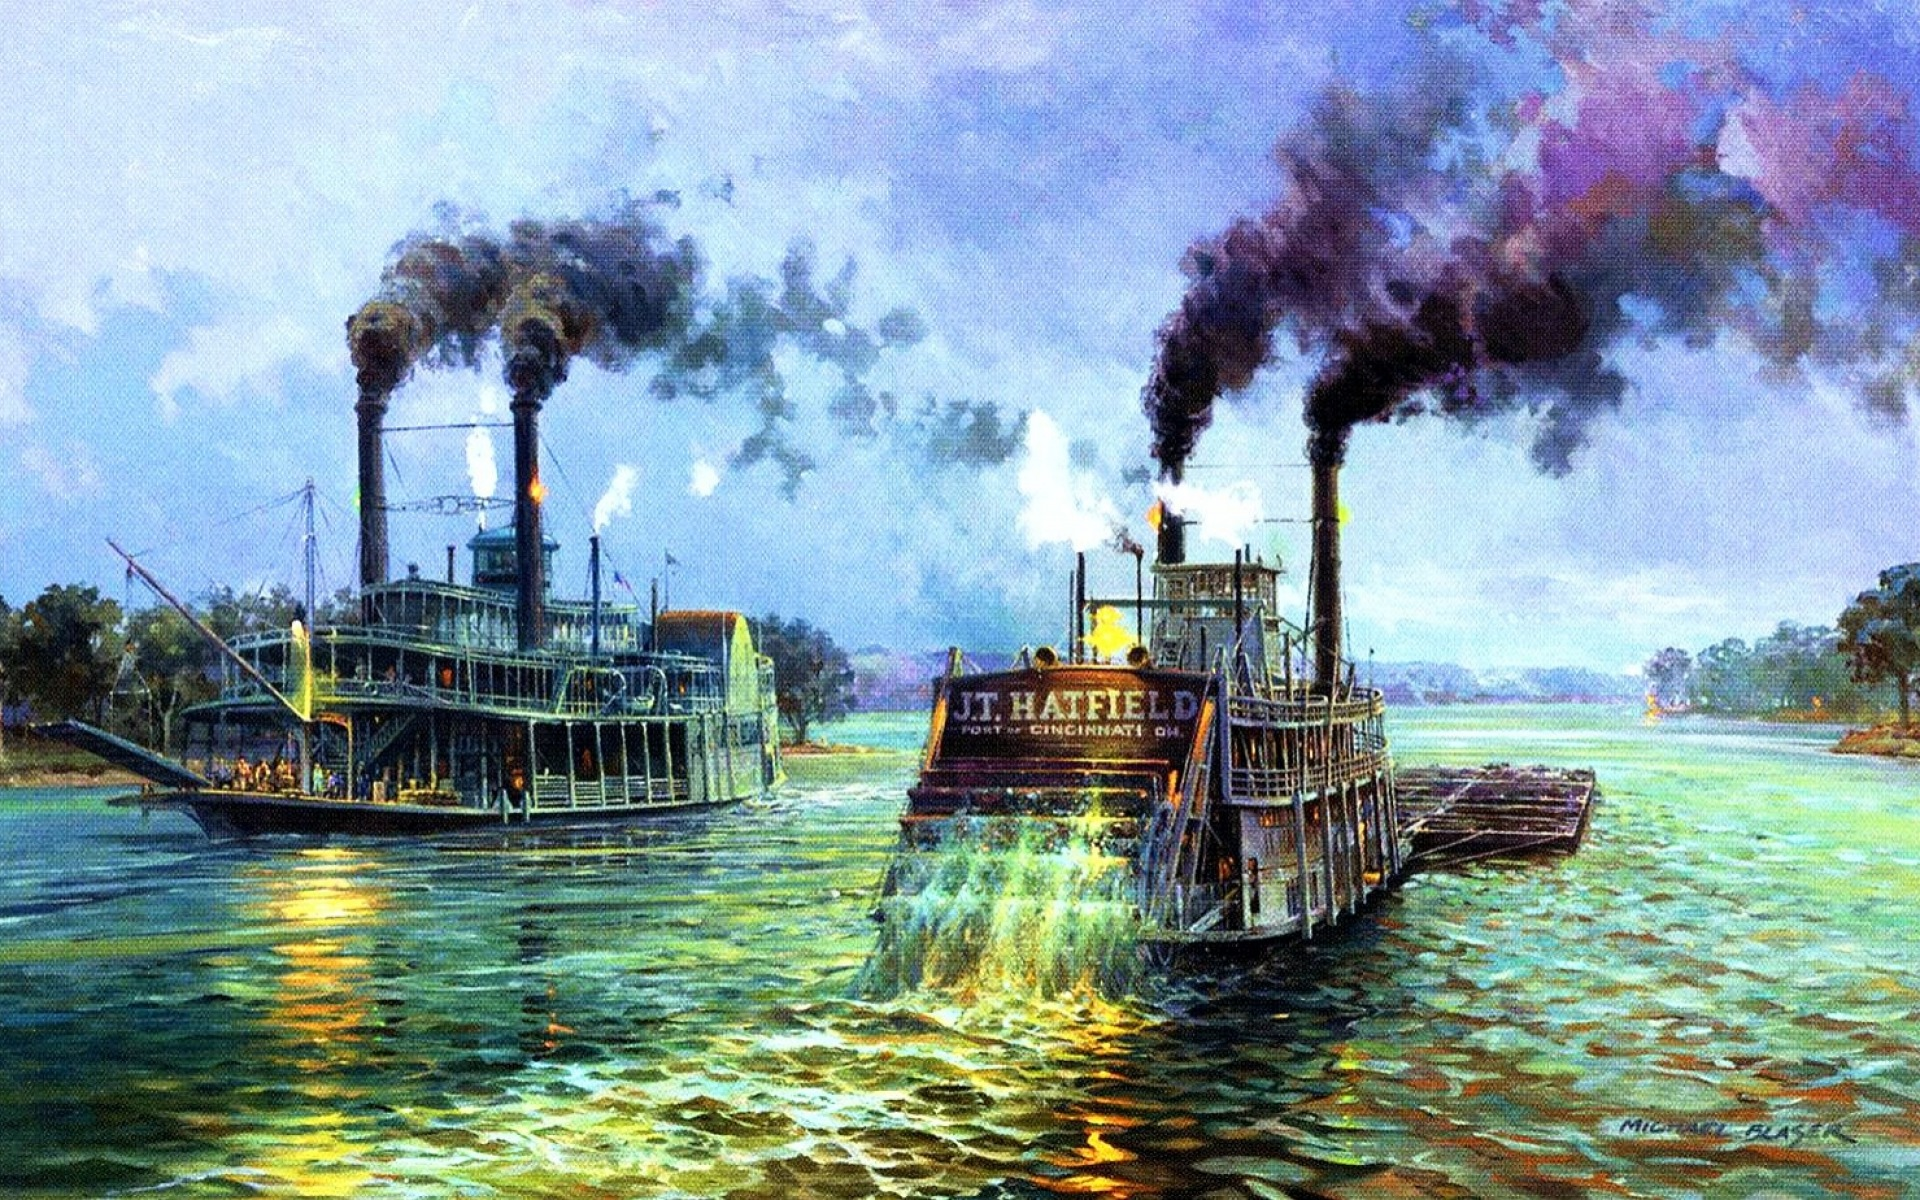 Animated Wallpaper For Tablet River Steam Boats Mississippi Wallpapers River Steam